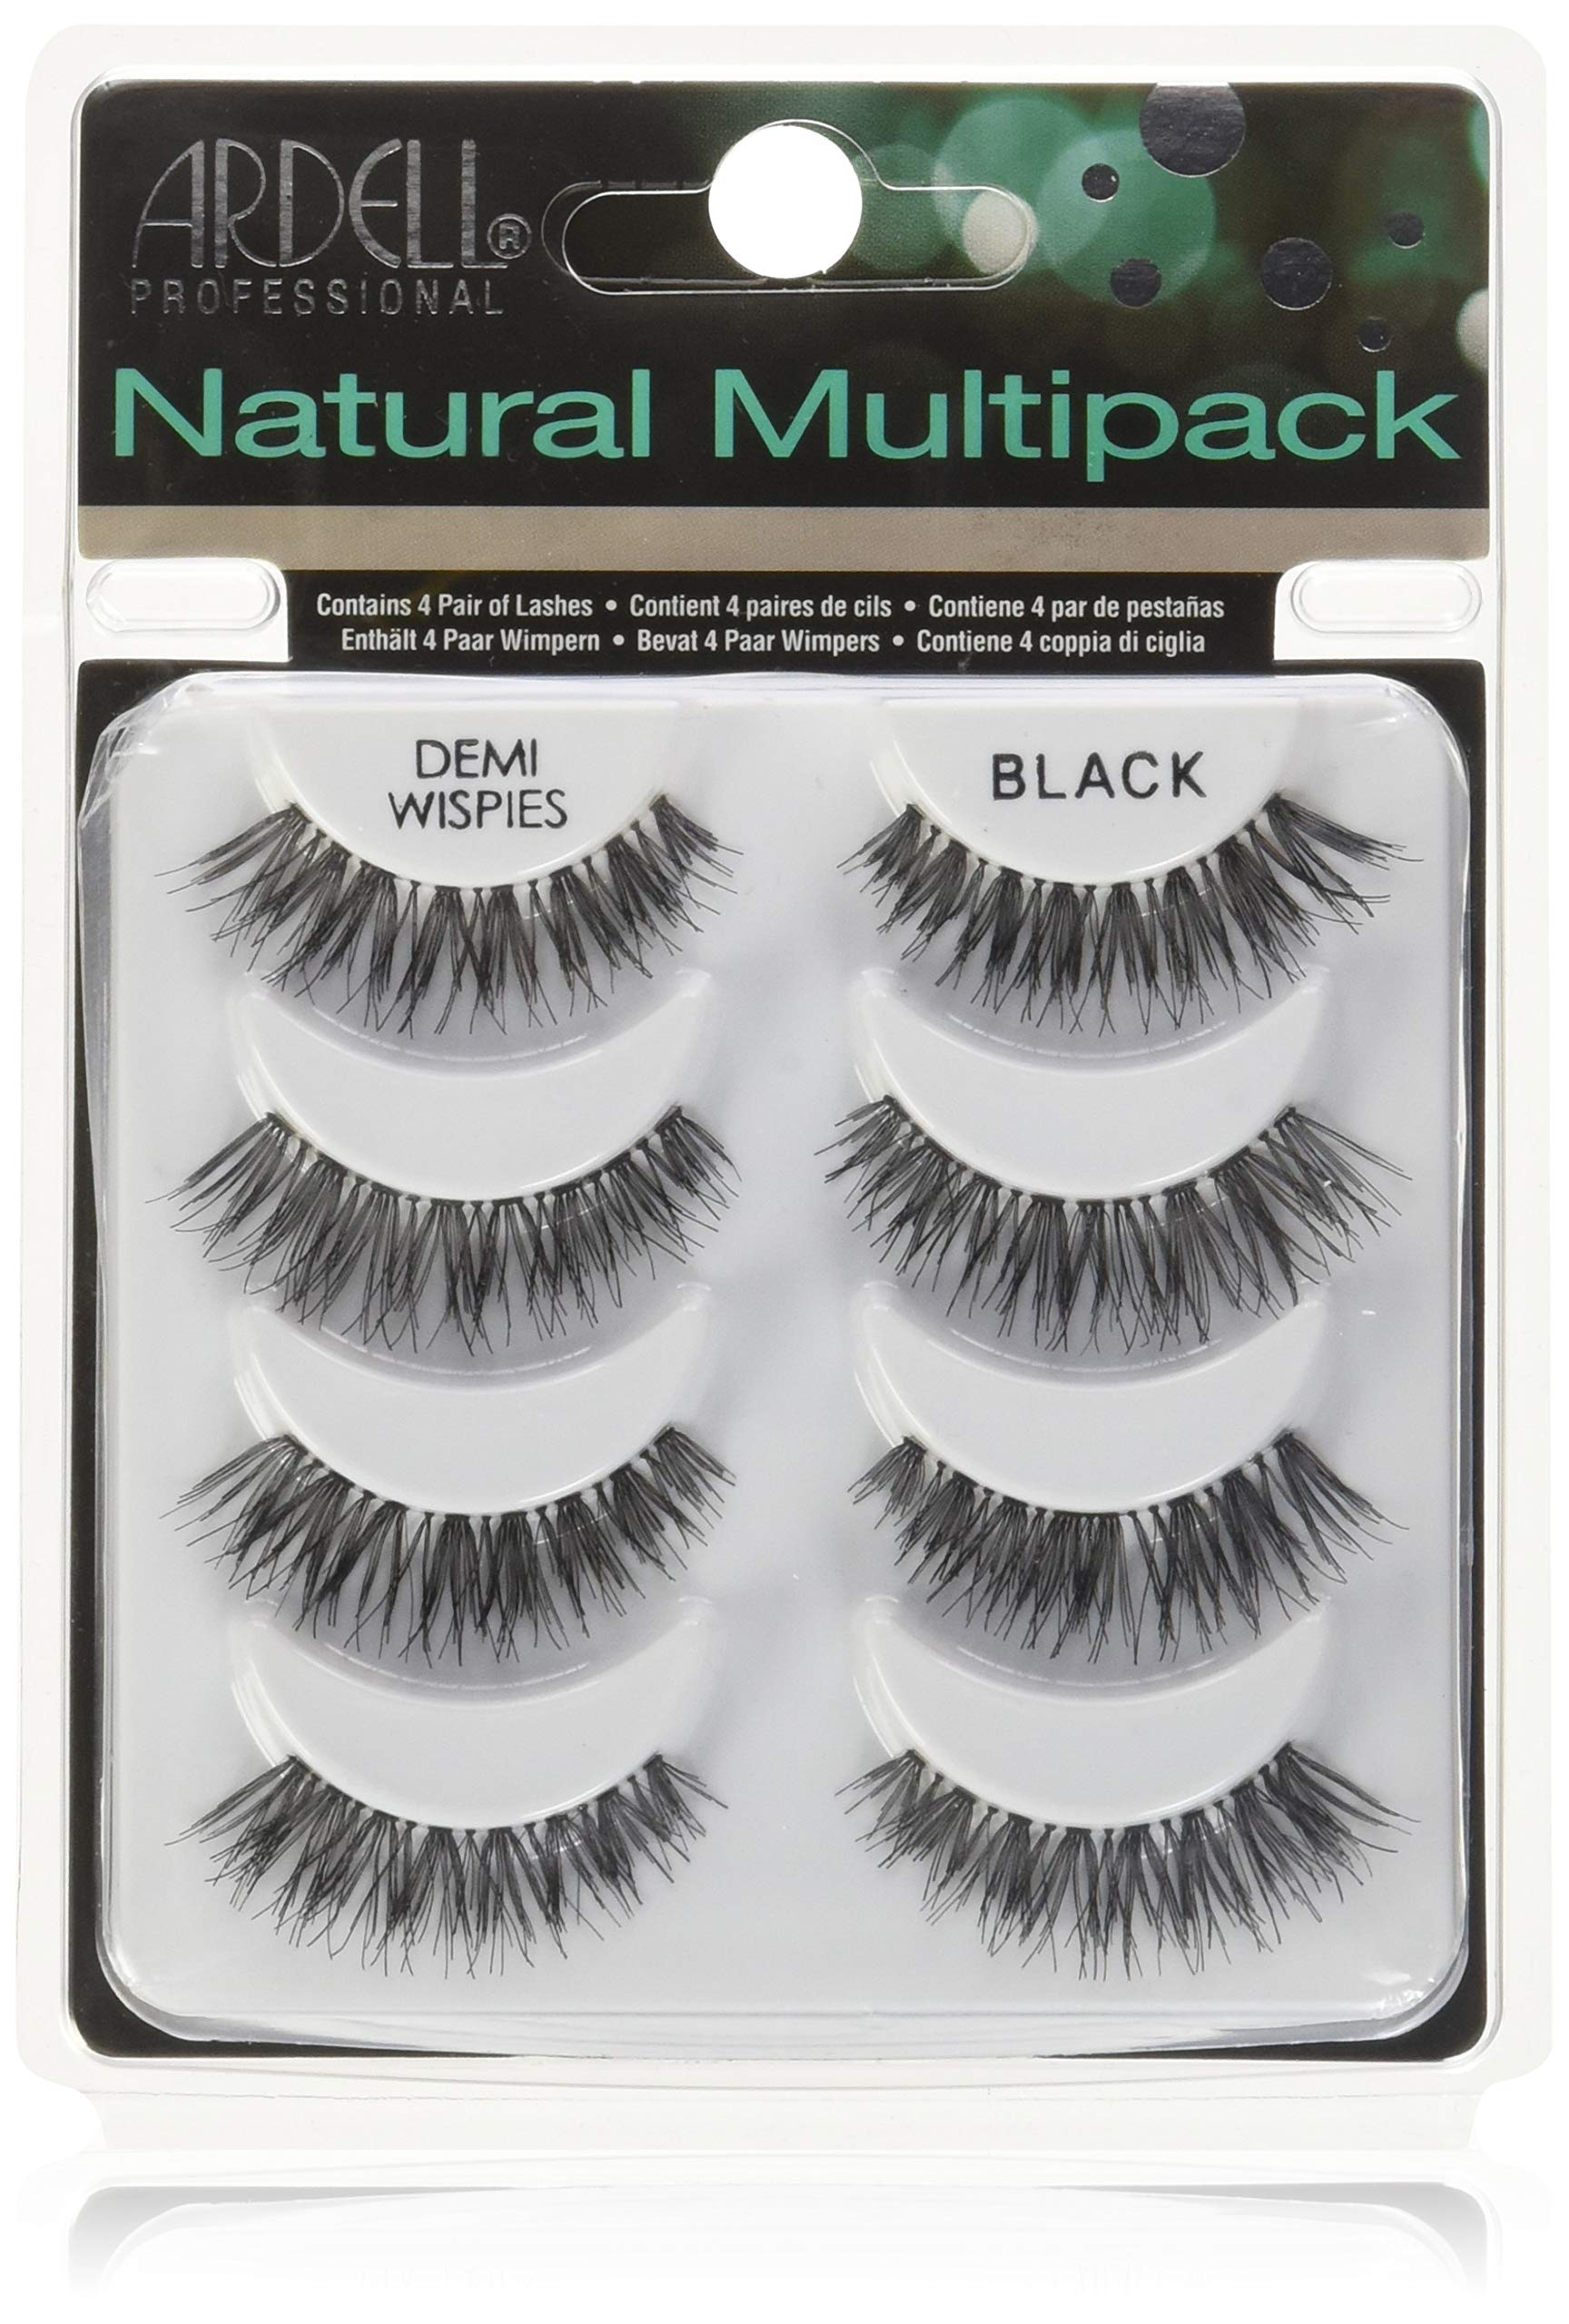 f12bc93f2b6 Amazon.com: Ardell Multipack Demi Wispies Fake Eyelashes 2 Pack: Health &  Personal Care